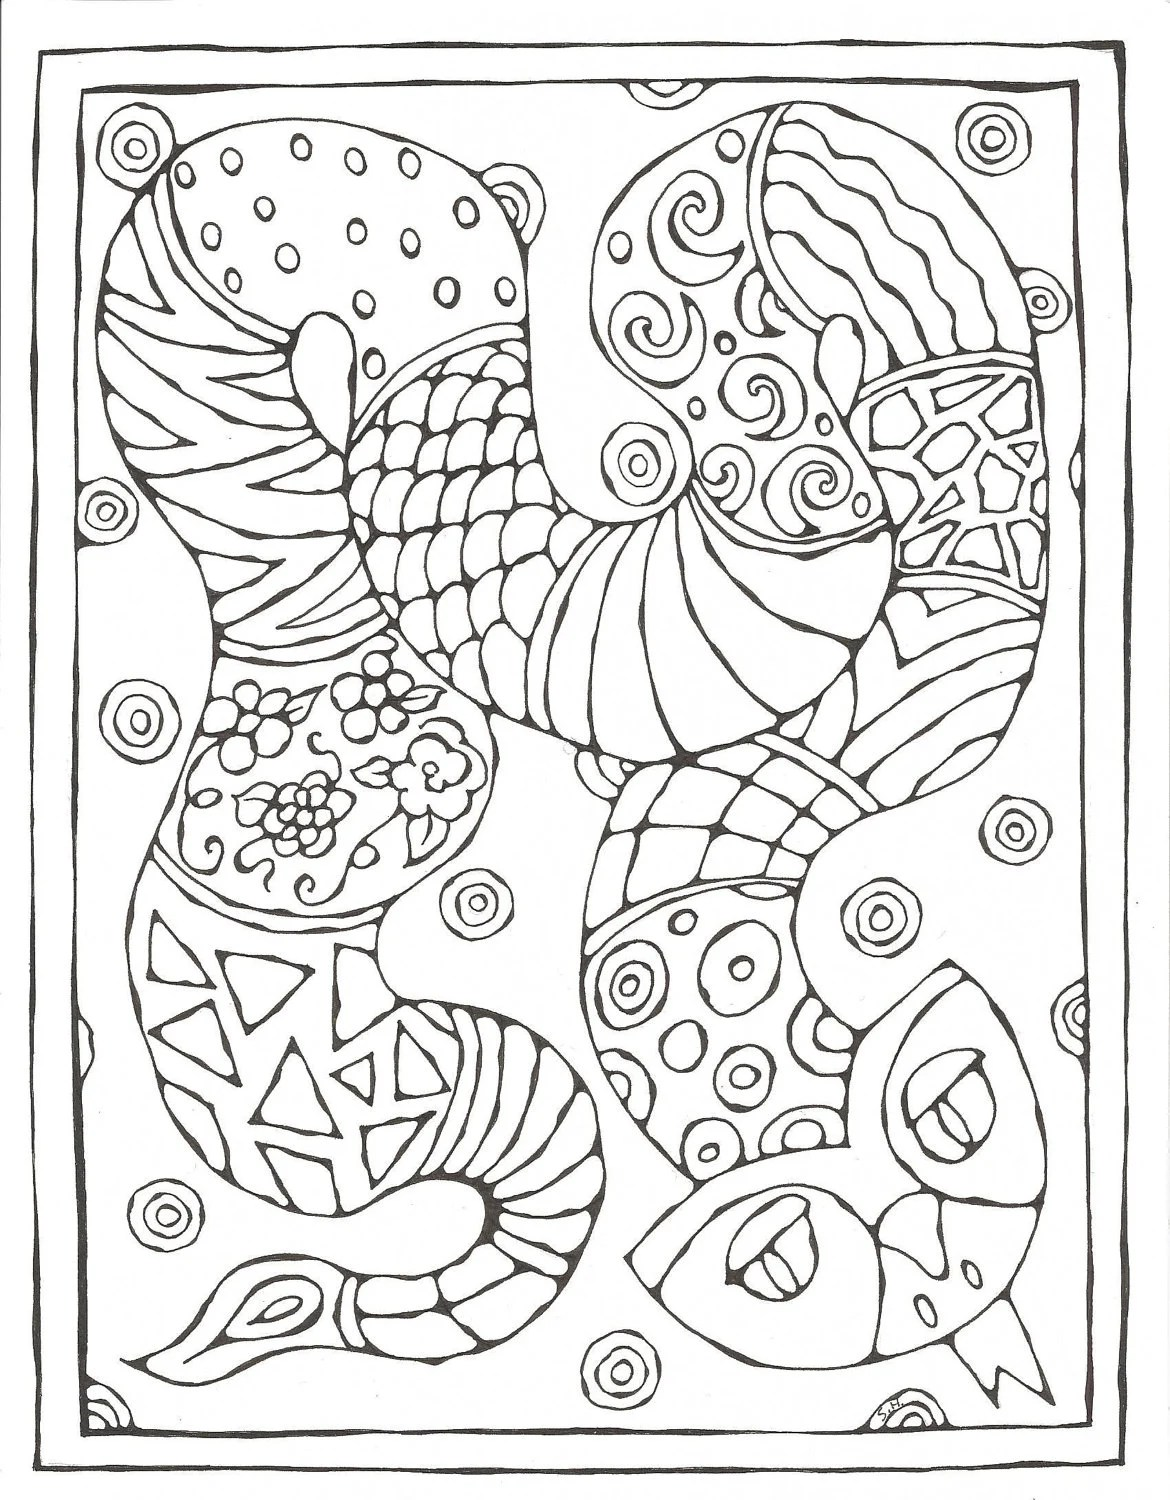 Chinese Zodiac Printable Coloring Pages By Skadoodled On Etsy